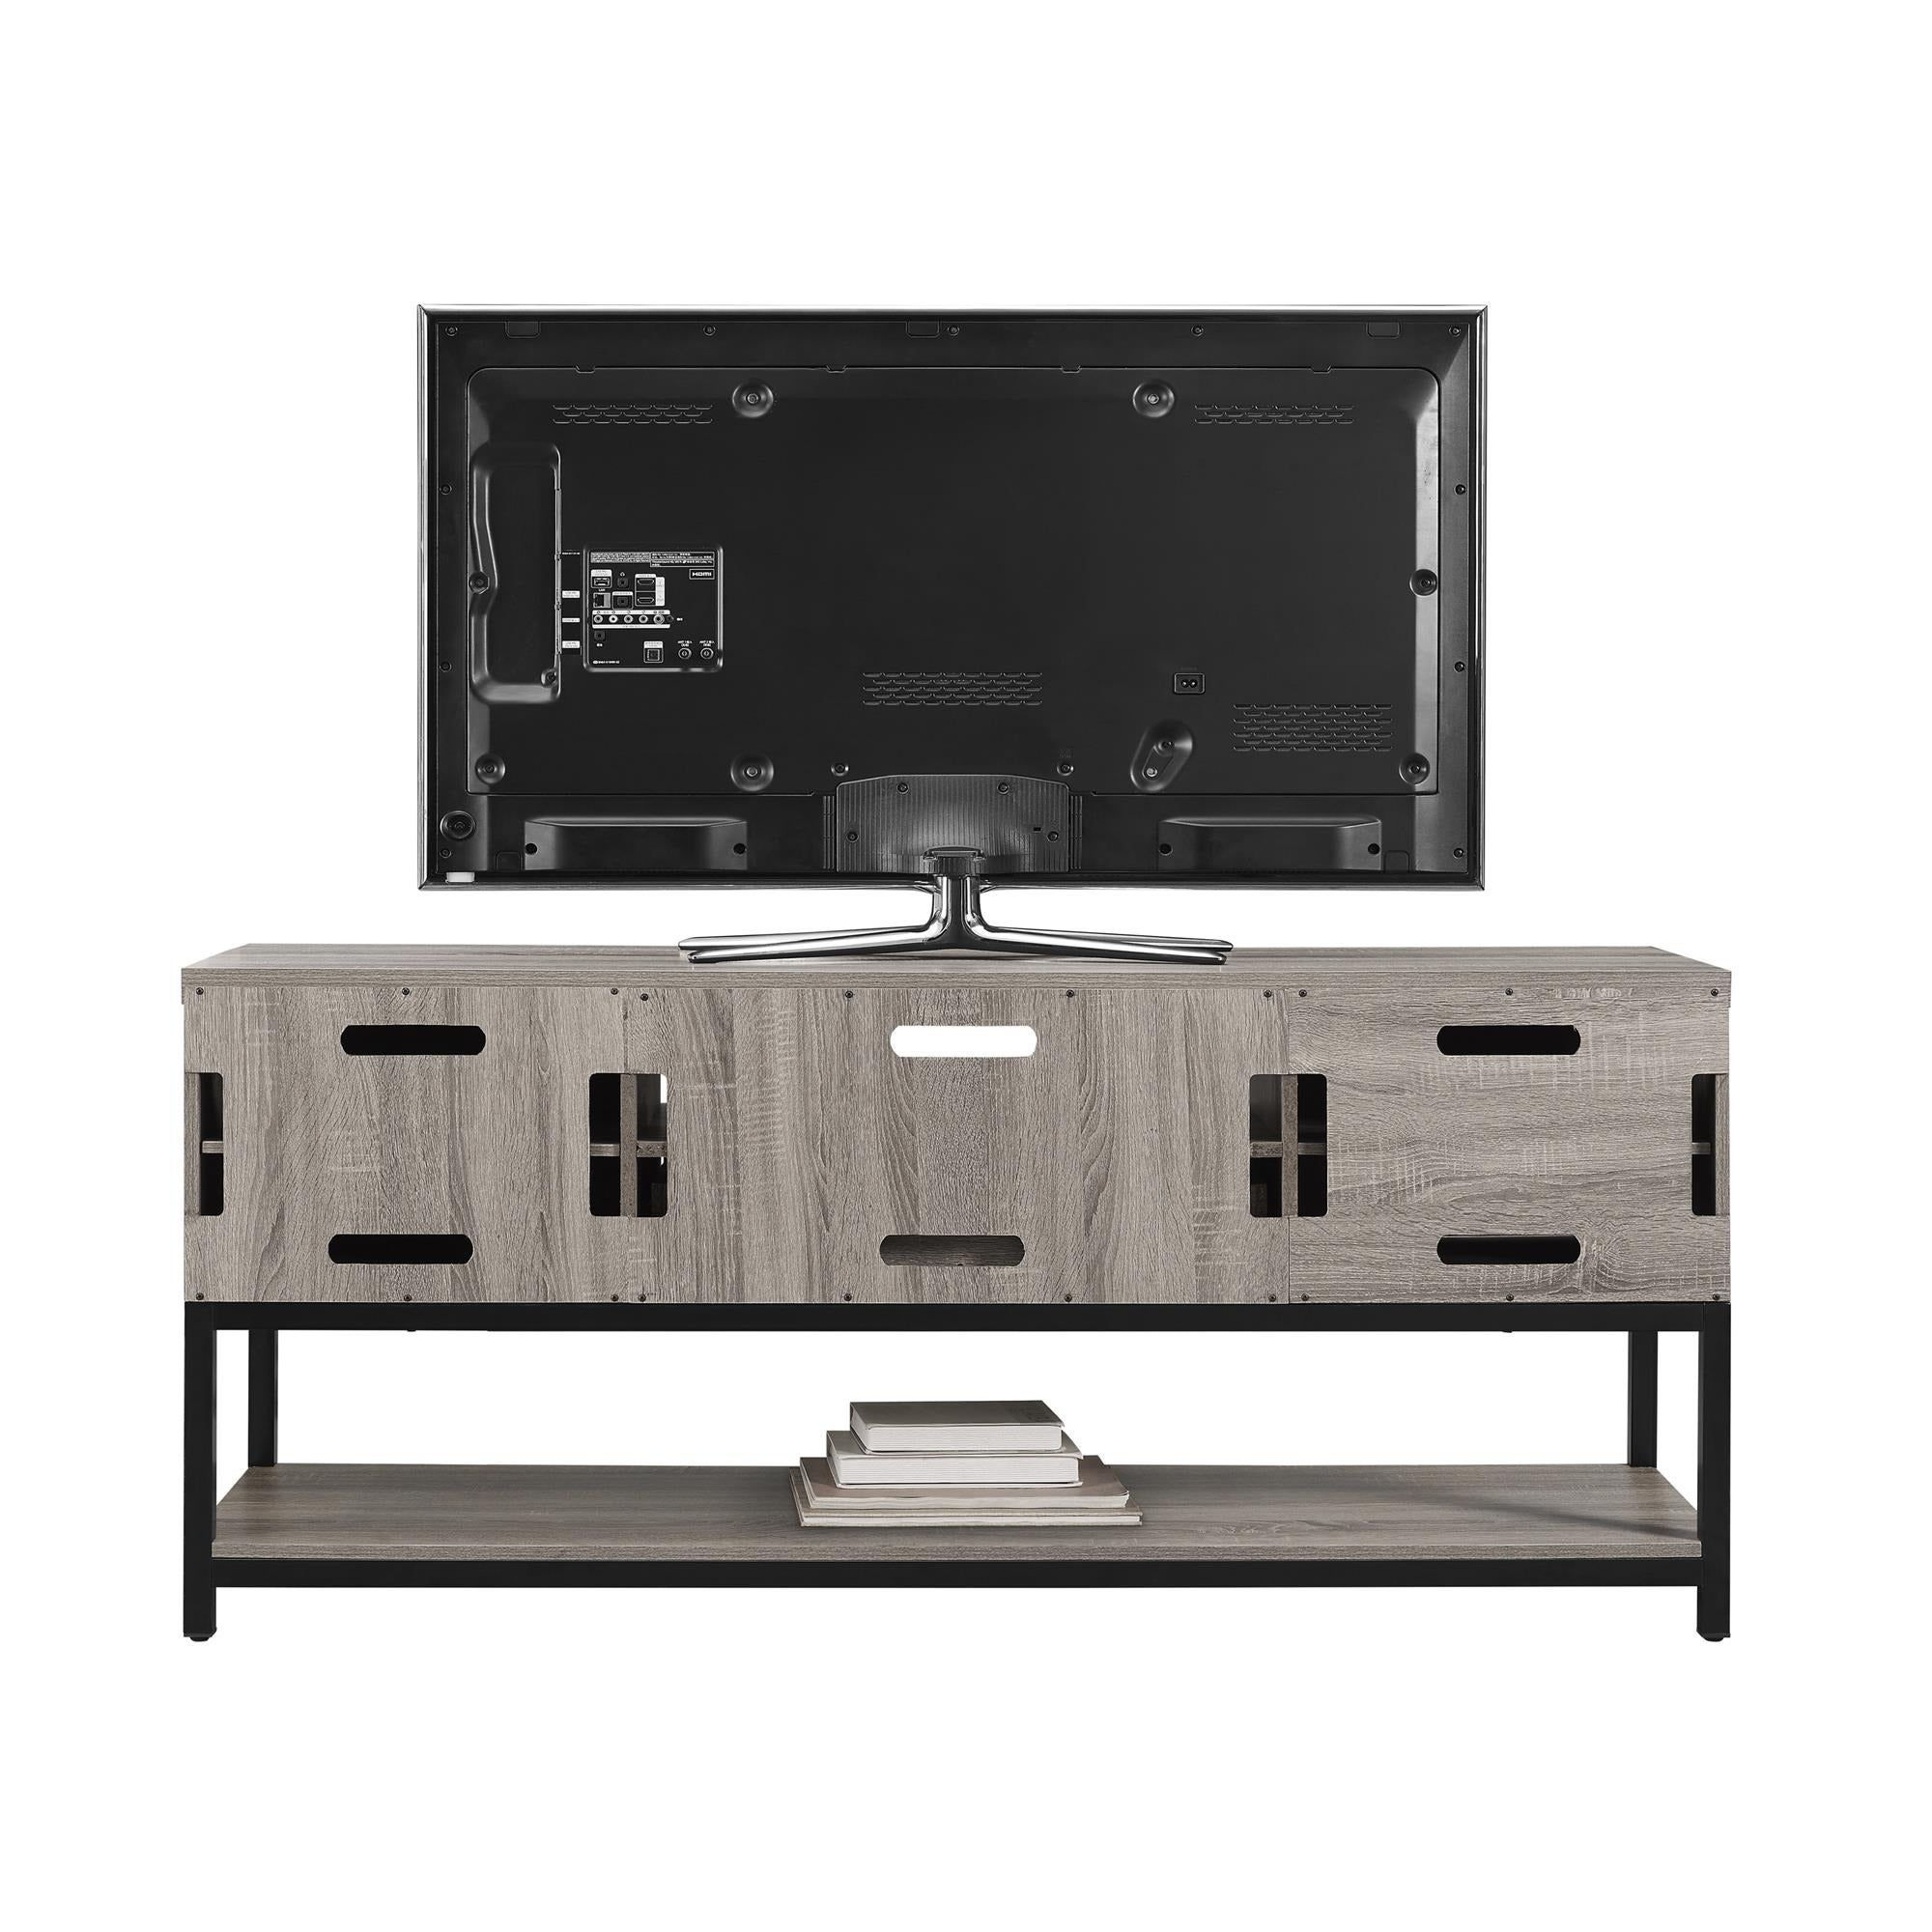 Table De Television Mesa Tv De Diseo Para Saln Bacher Cristal  # Ateca Meuble Tv